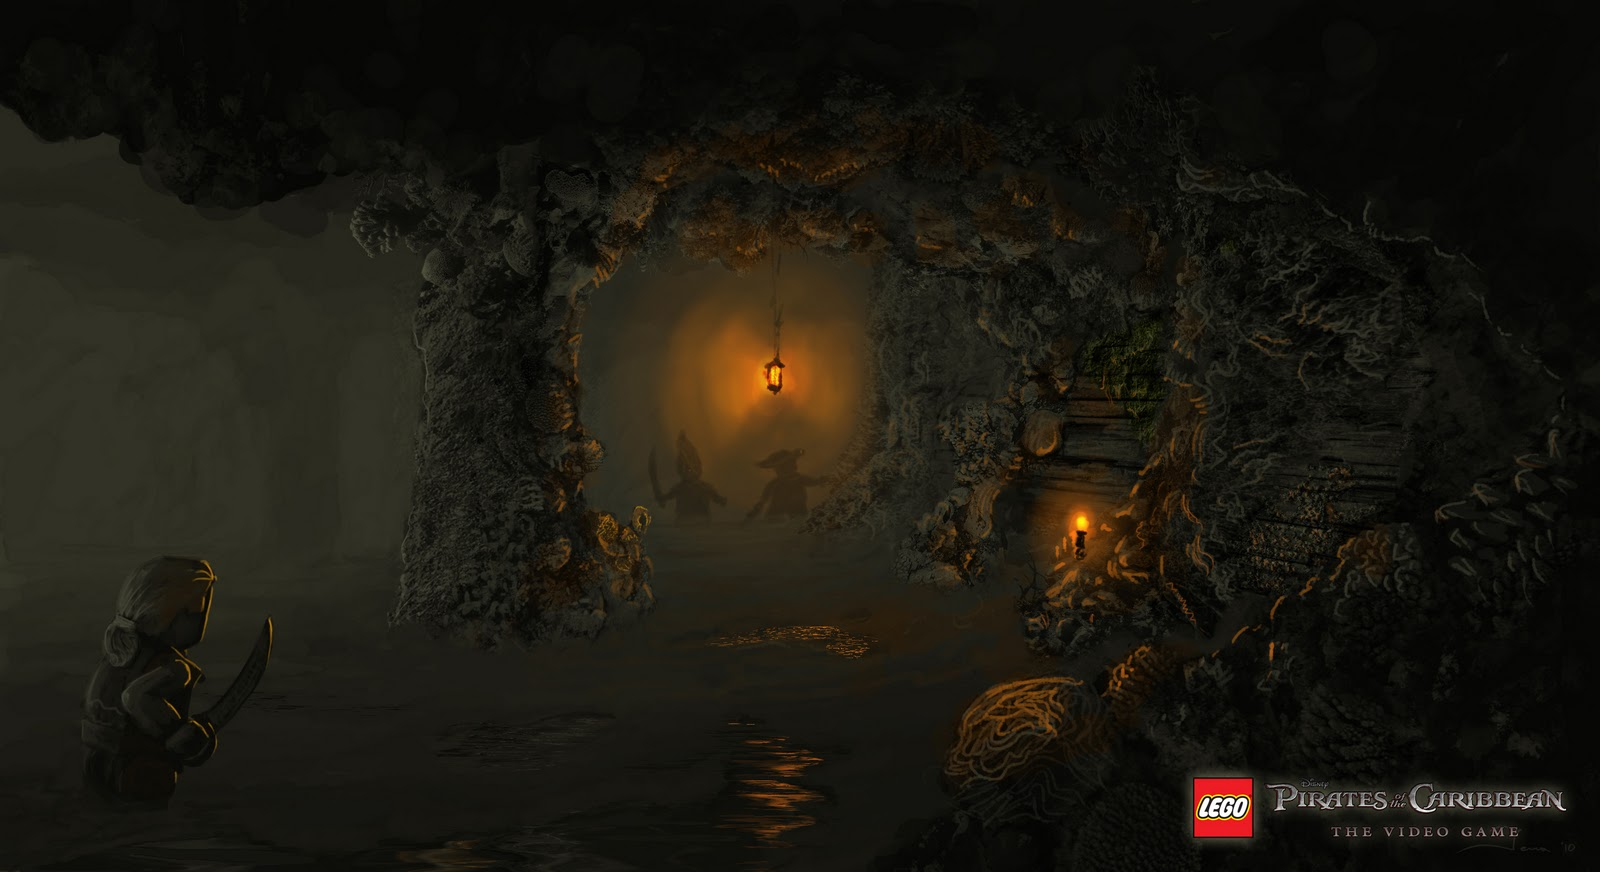 Concept art for lego pirates of the caribbean the video game